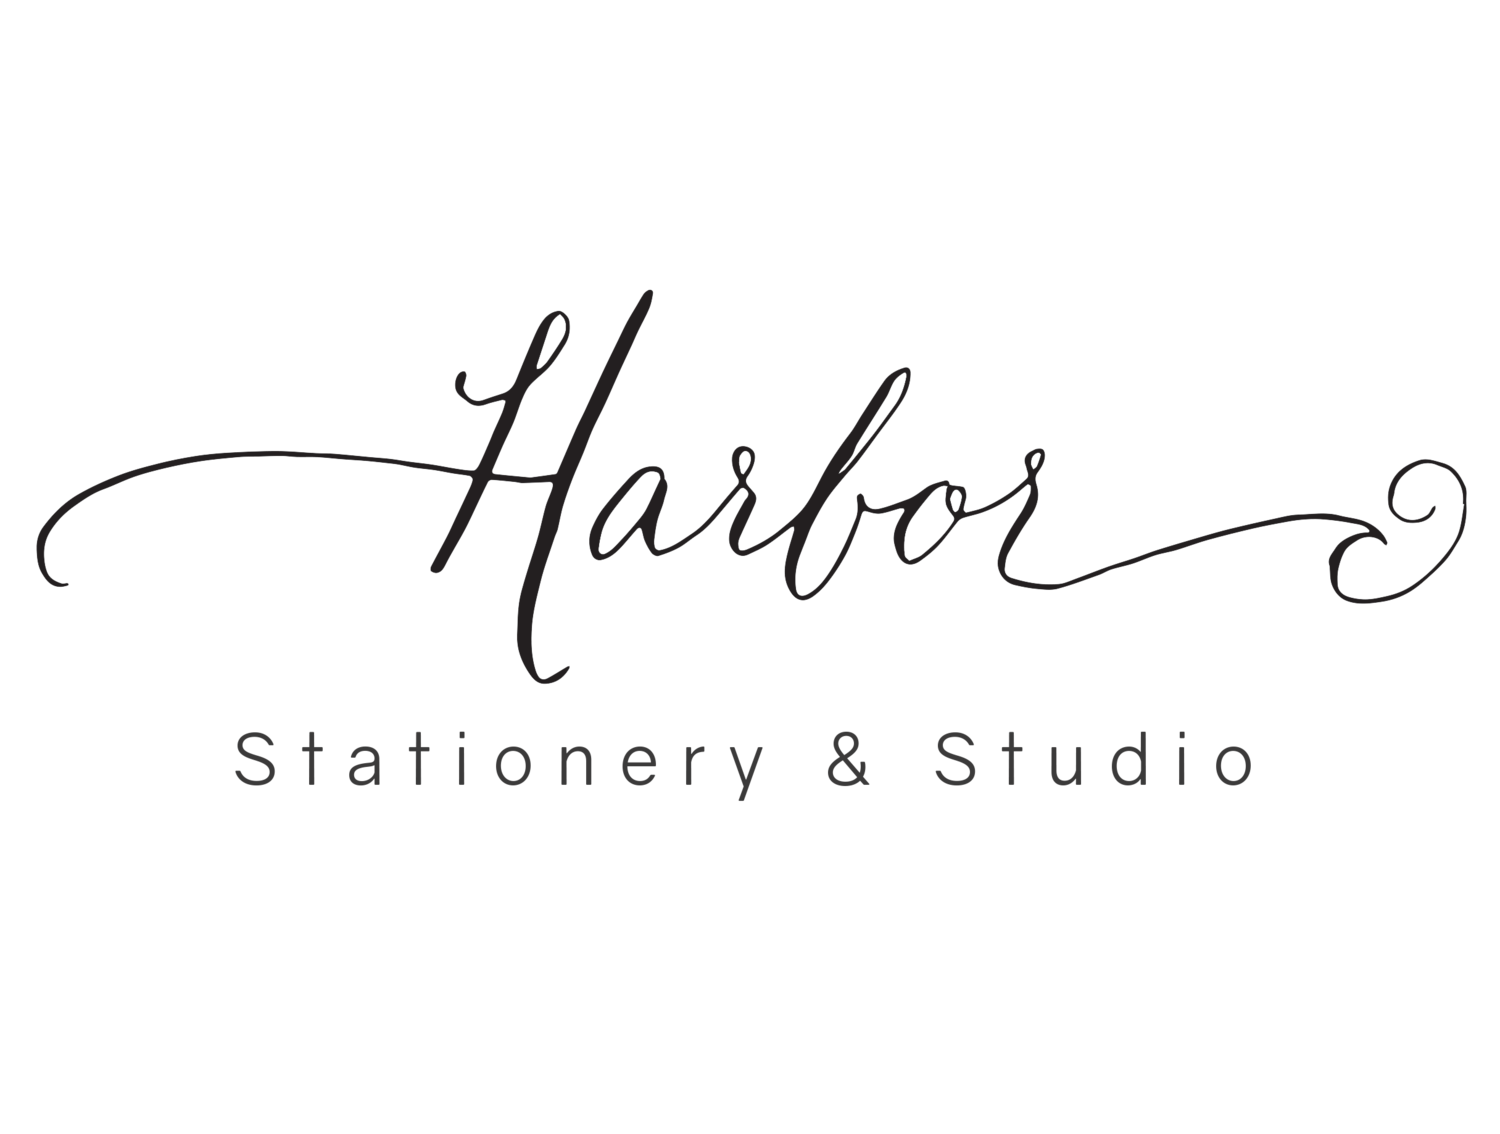 Harbor Stationery & Studio